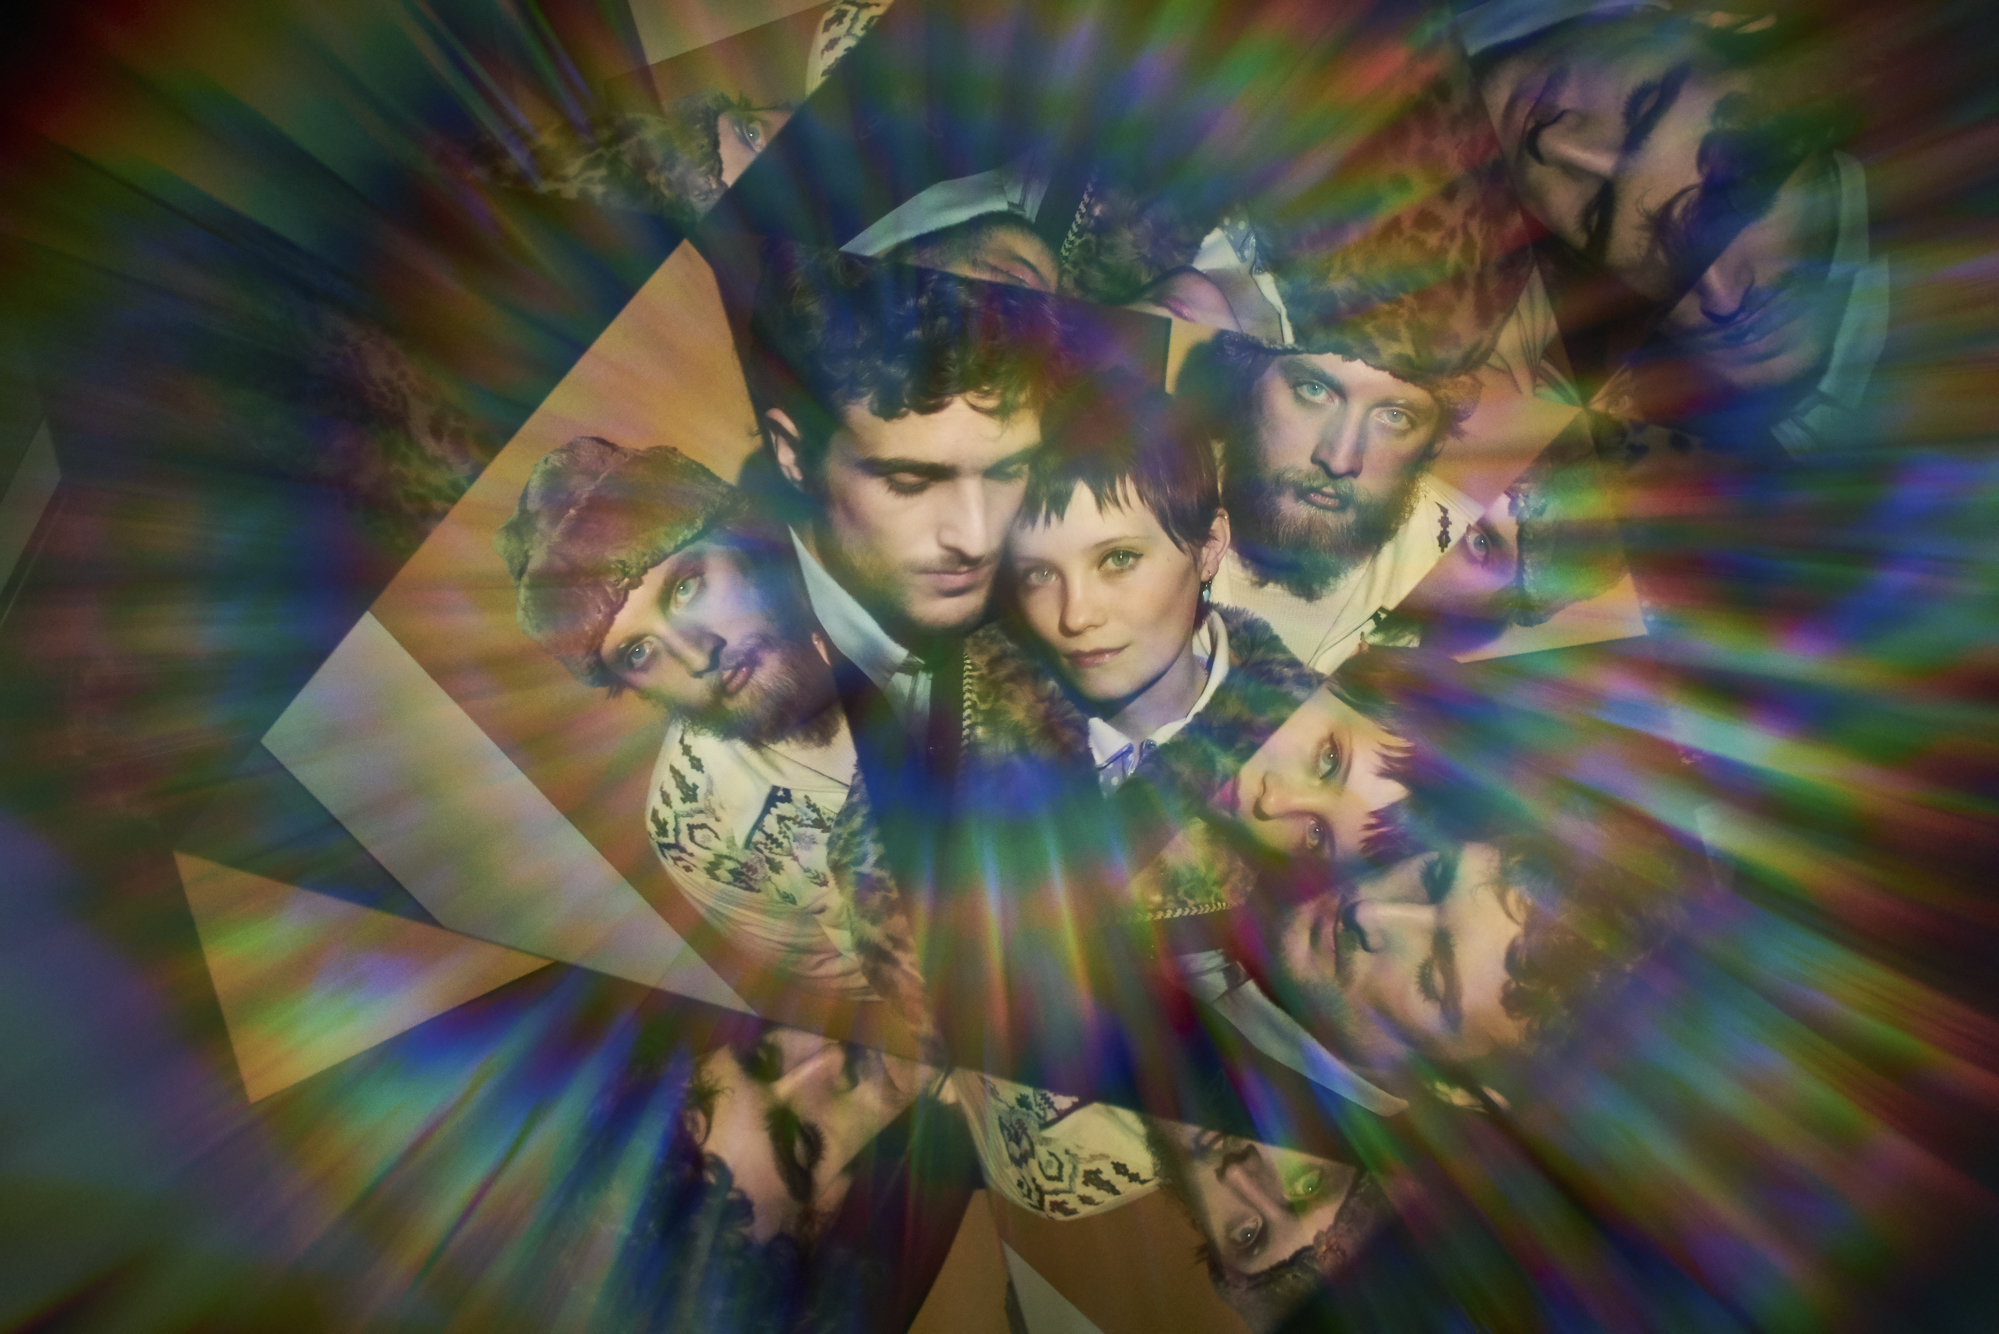 Northern Transmissions' interview with The Shacks